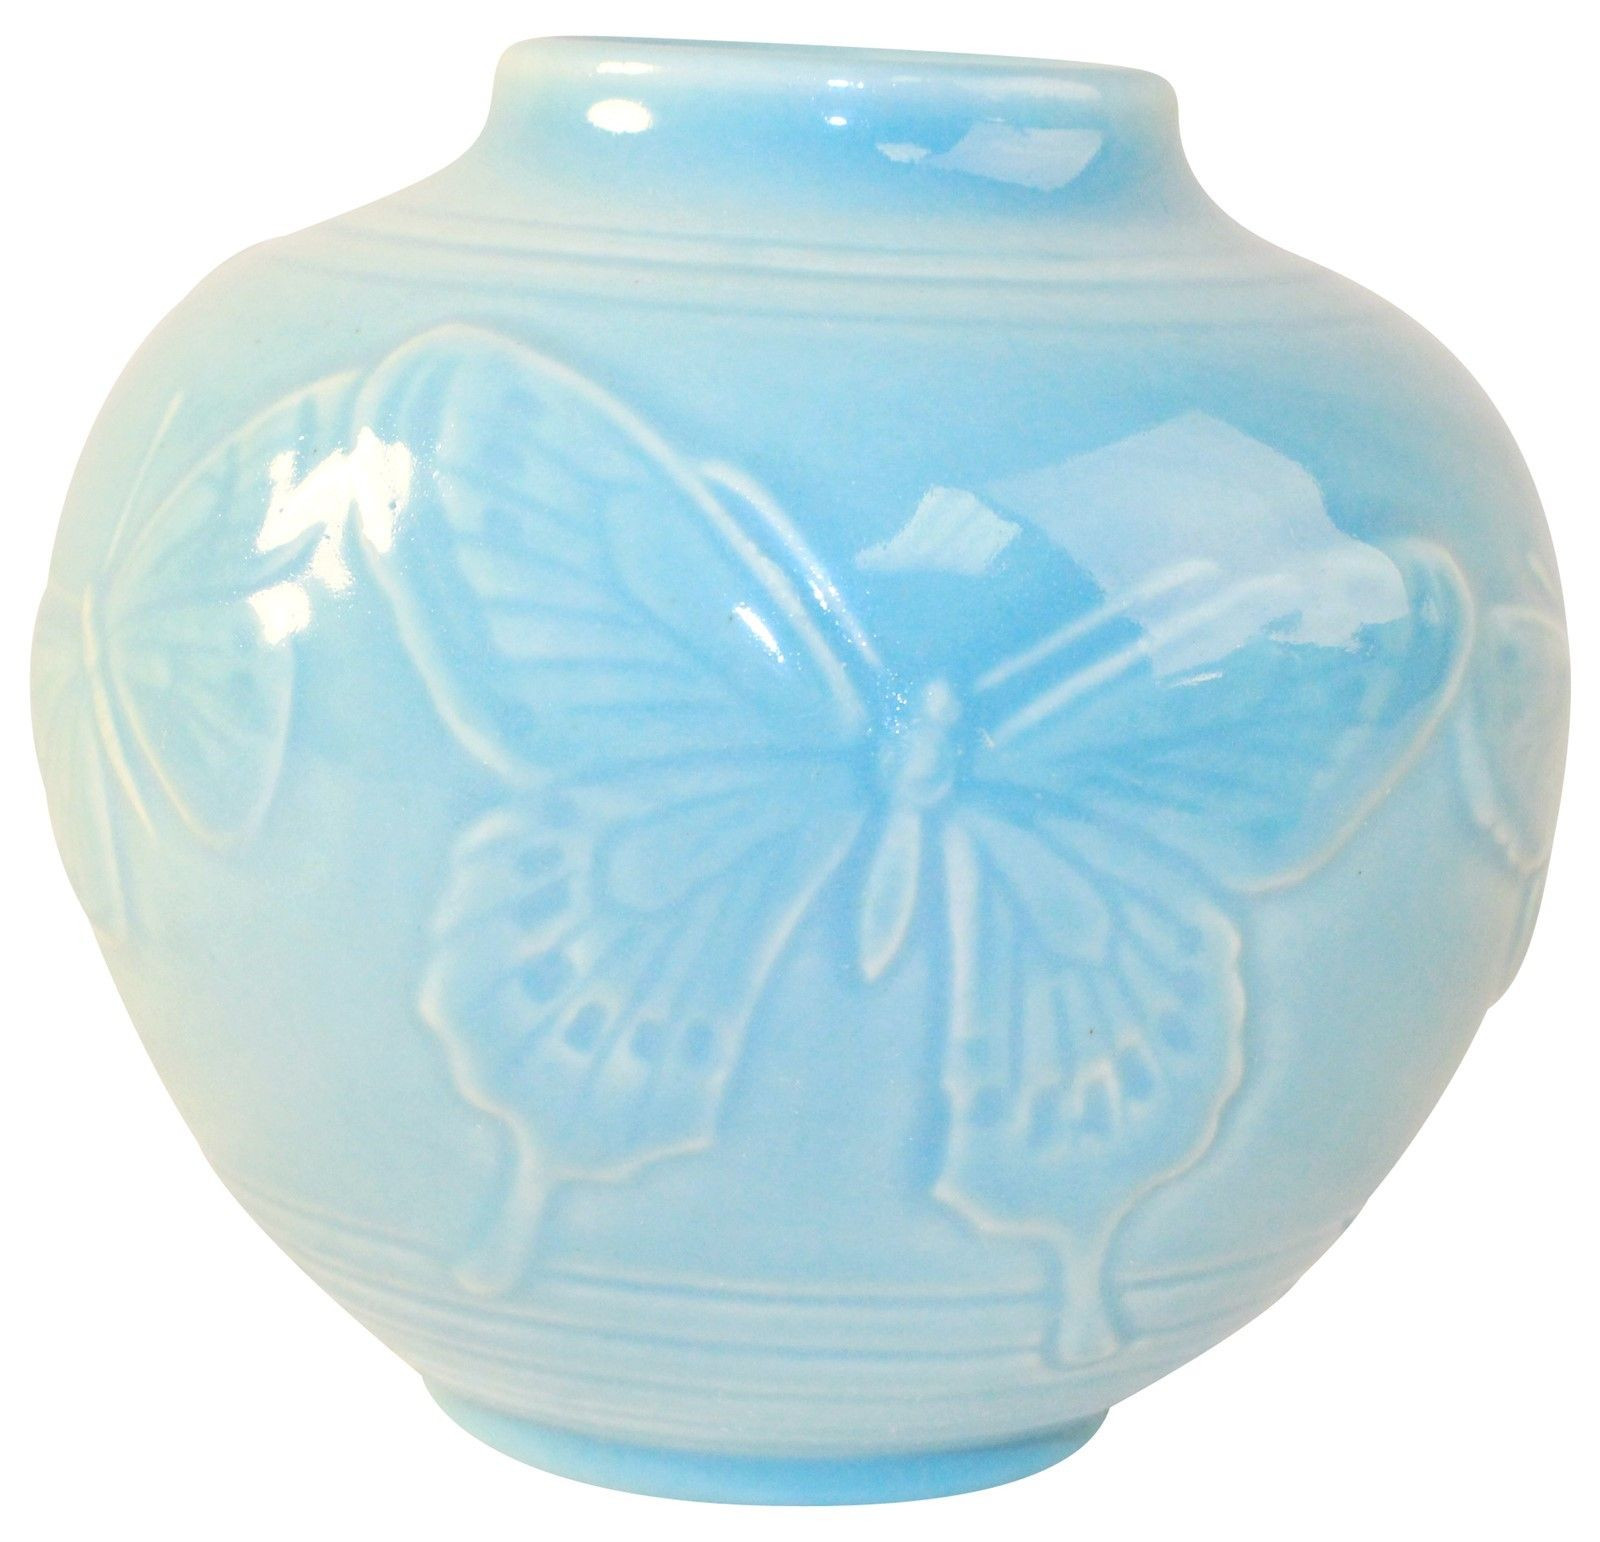 antique rookwood pottery vases of rookwood pottery 1947 blue butterfly vase 6509 rookwood pottery pertaining to rookwood pottery 1947 blue butterfly vase 6509